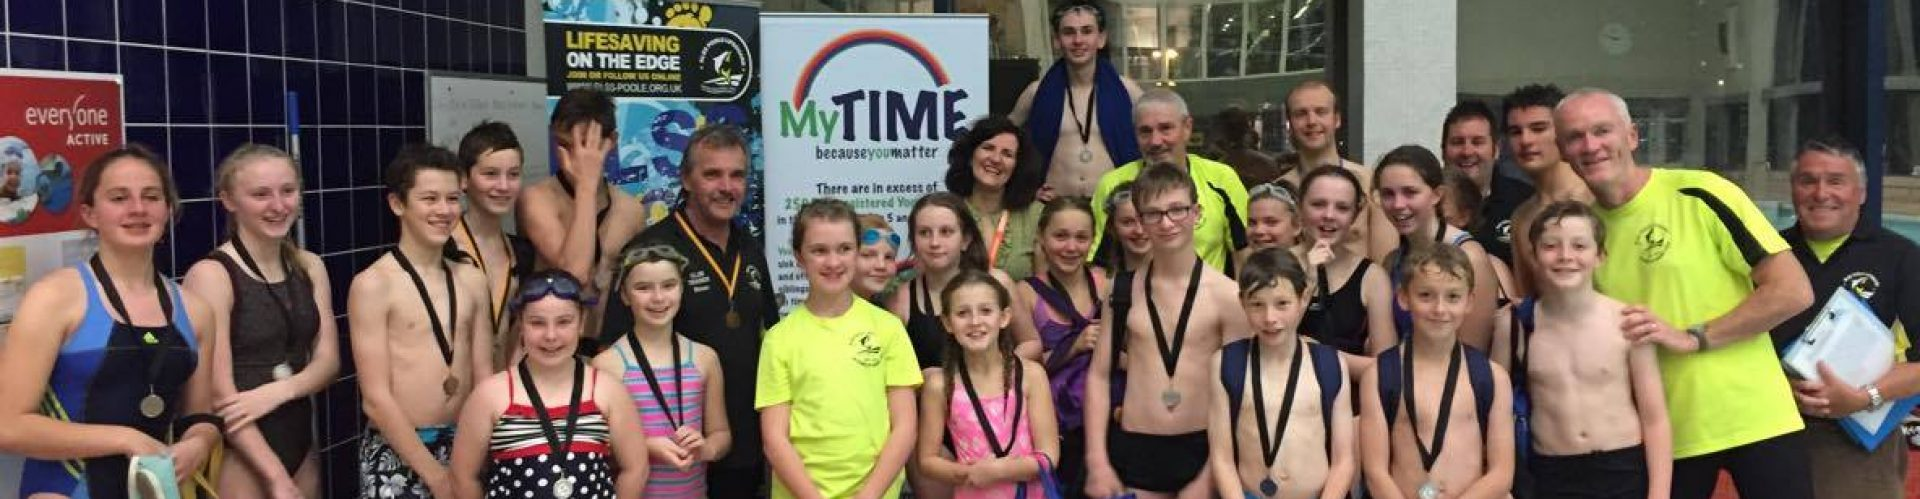 https://www.rlss-poole.org.uk/wp-content/uploads/2015/11/cropped-SponSwim1-2.jpg